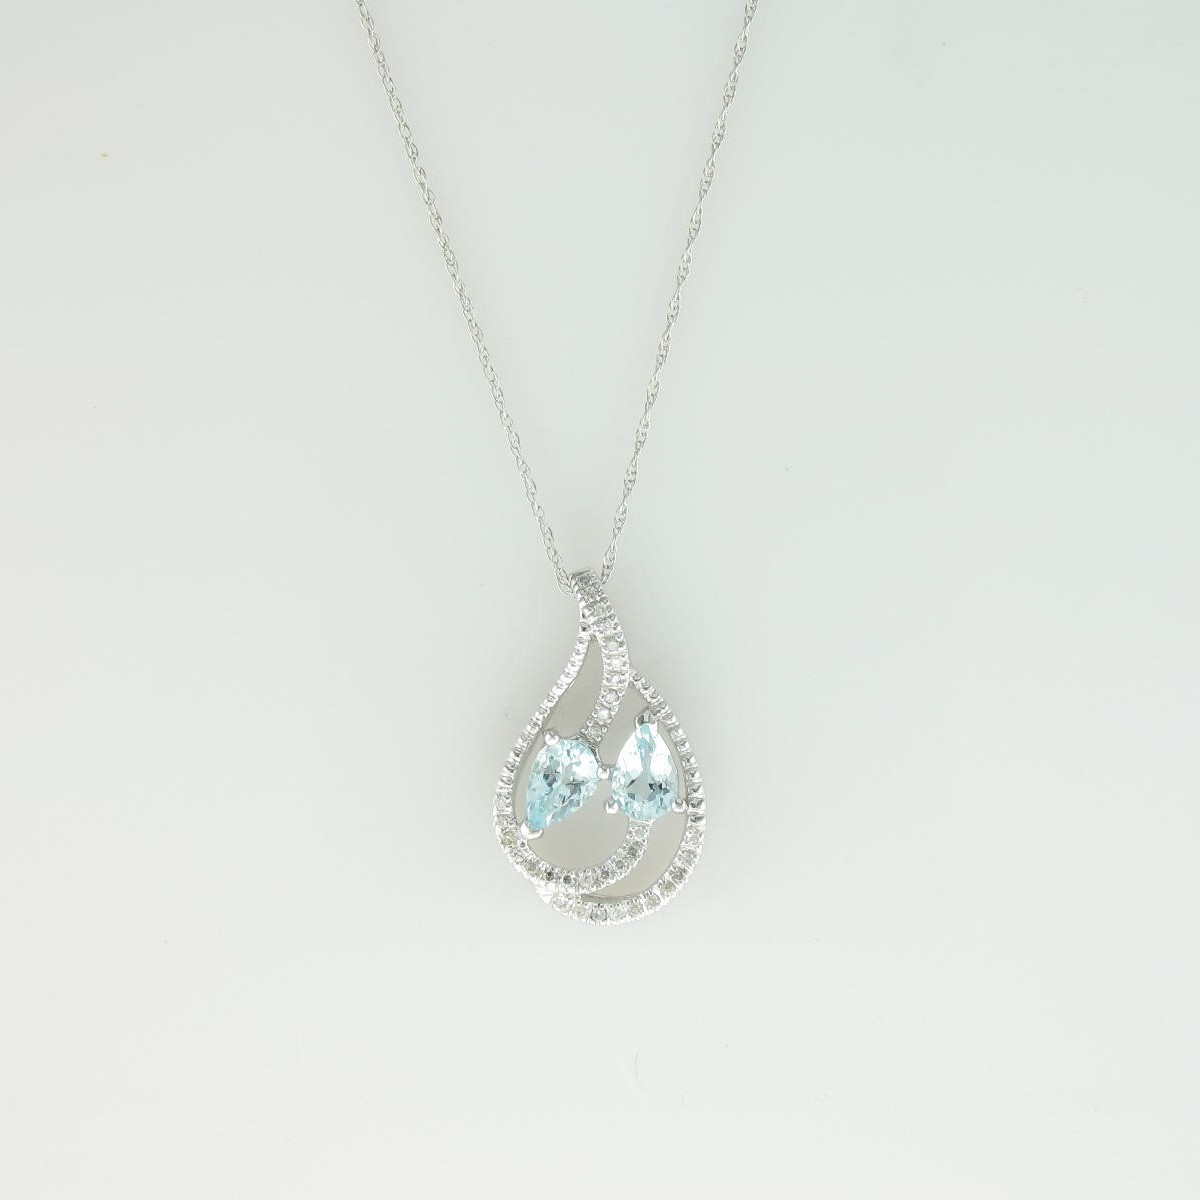 0.64tcw Aquamarine and Diamond Necklace set in 14k White Gold